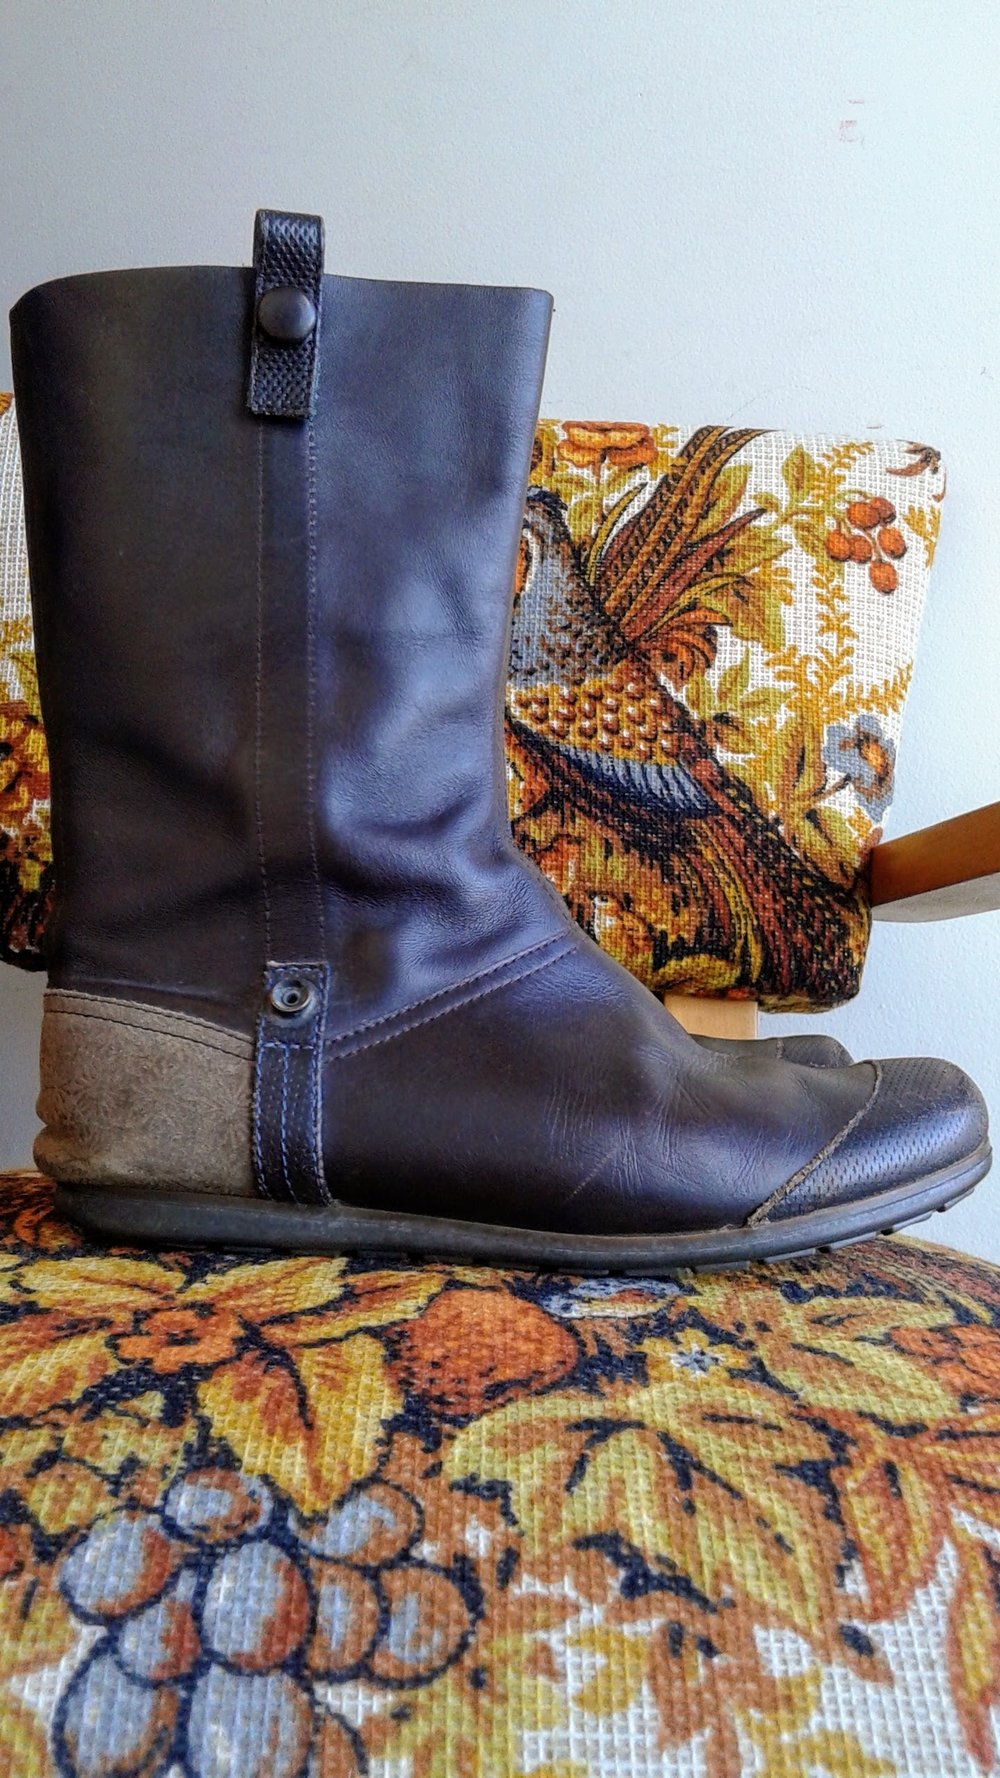 Camper boots; S6, $62